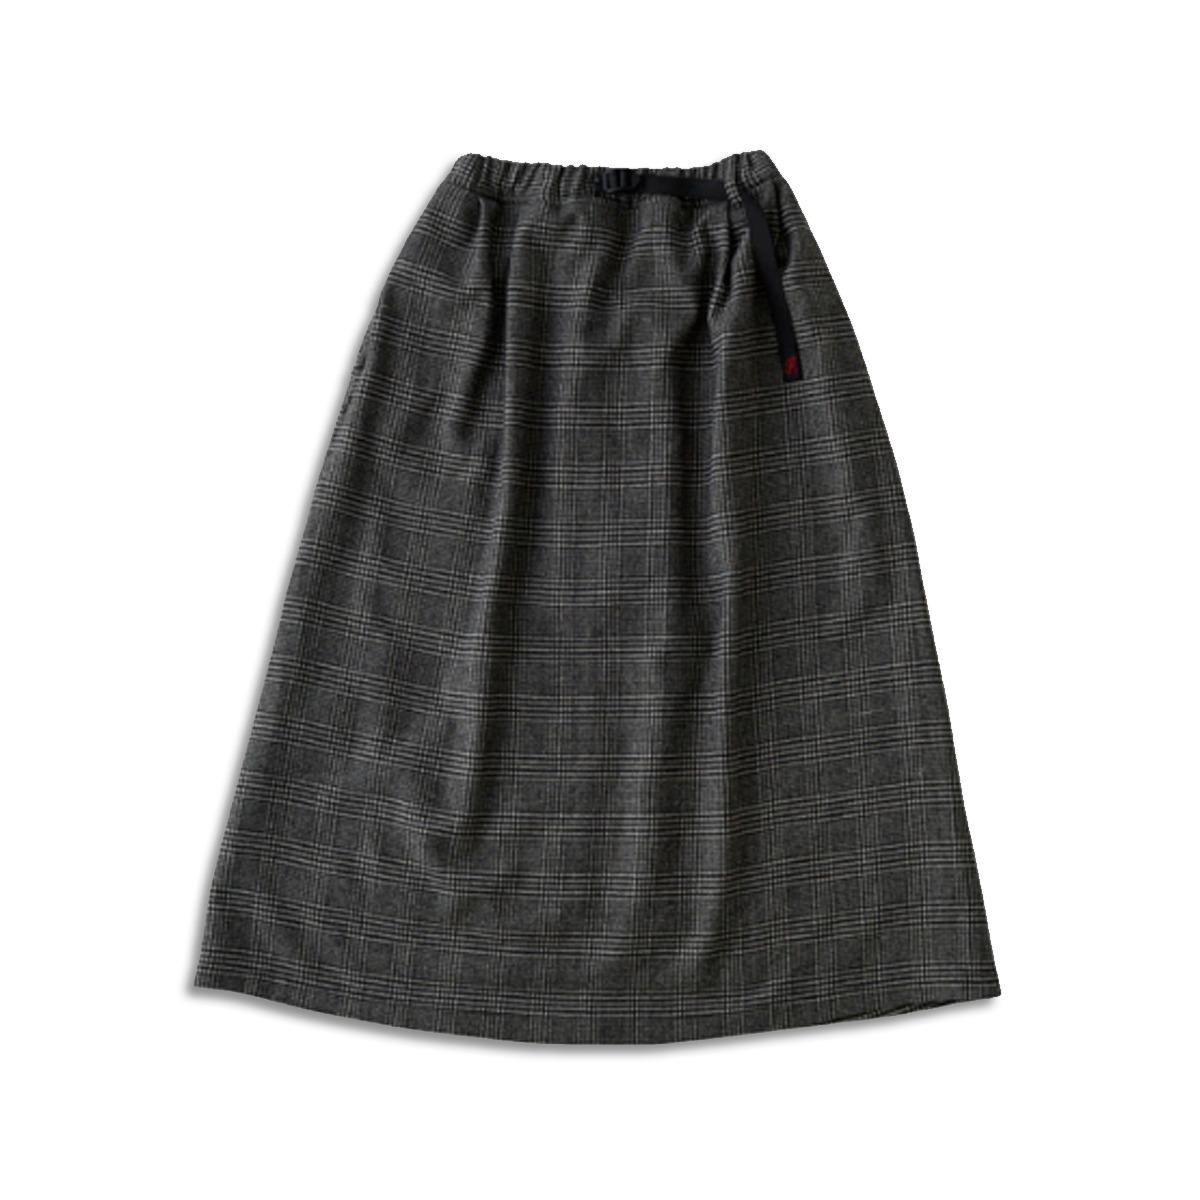 [GRAMICCI] WOOL BLEND LONG FLARE SKIRT 'HOUNDSTOOTH PATTERN'